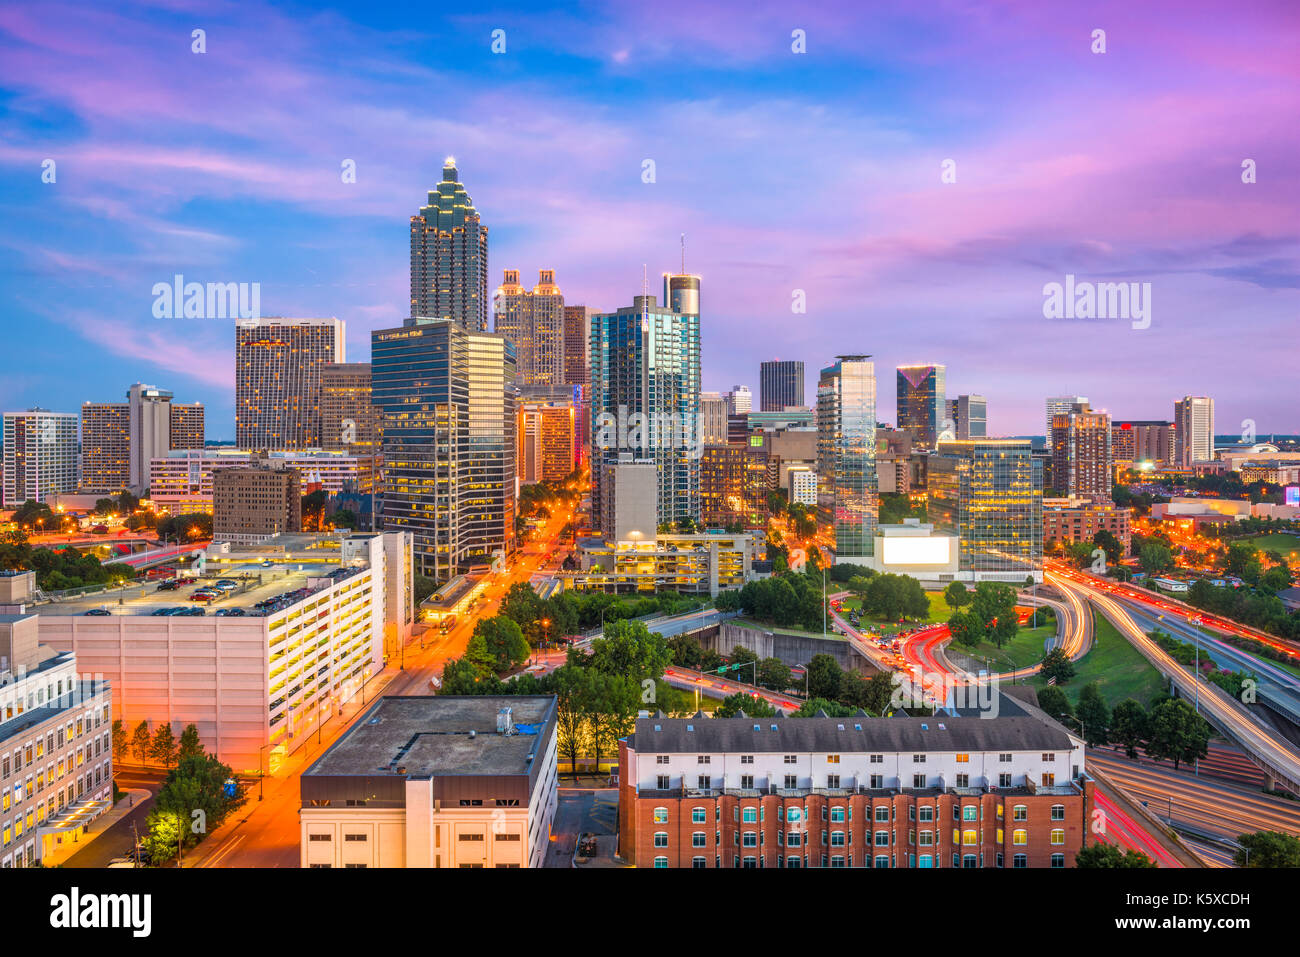 Atlanta, Georgia, USA downtown city skyline. - Stock Image